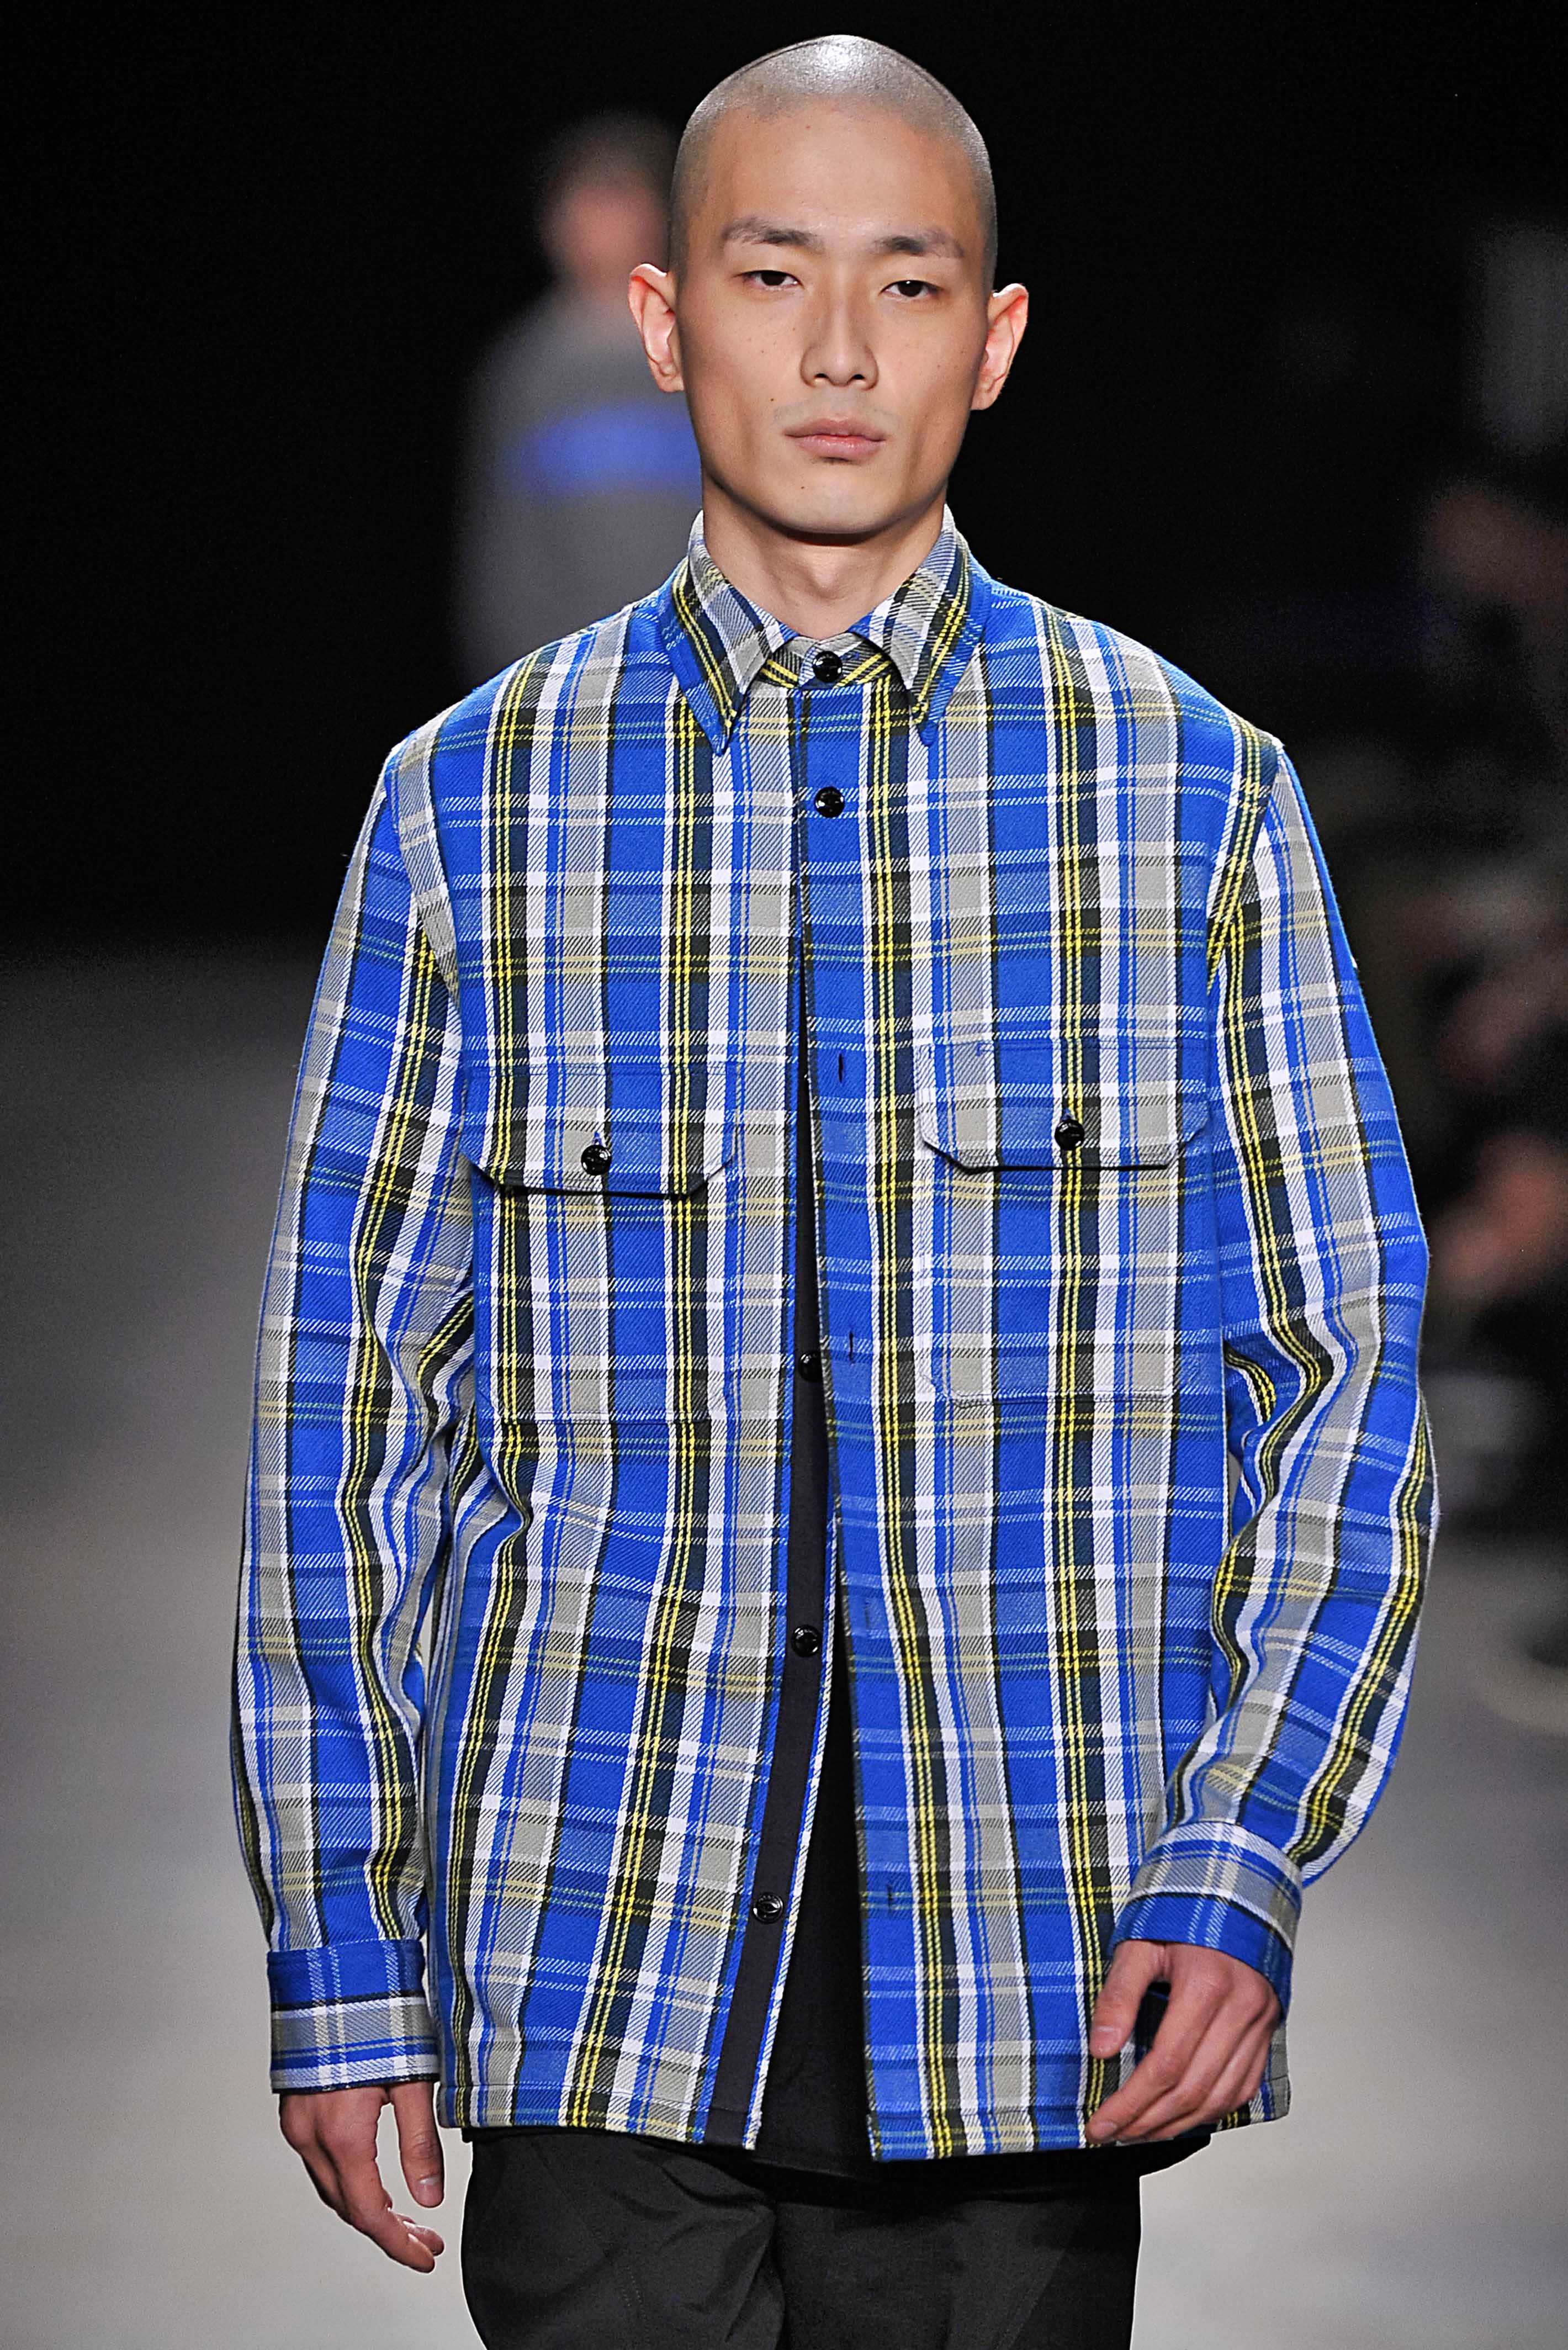 Asian man with shaved head on runway